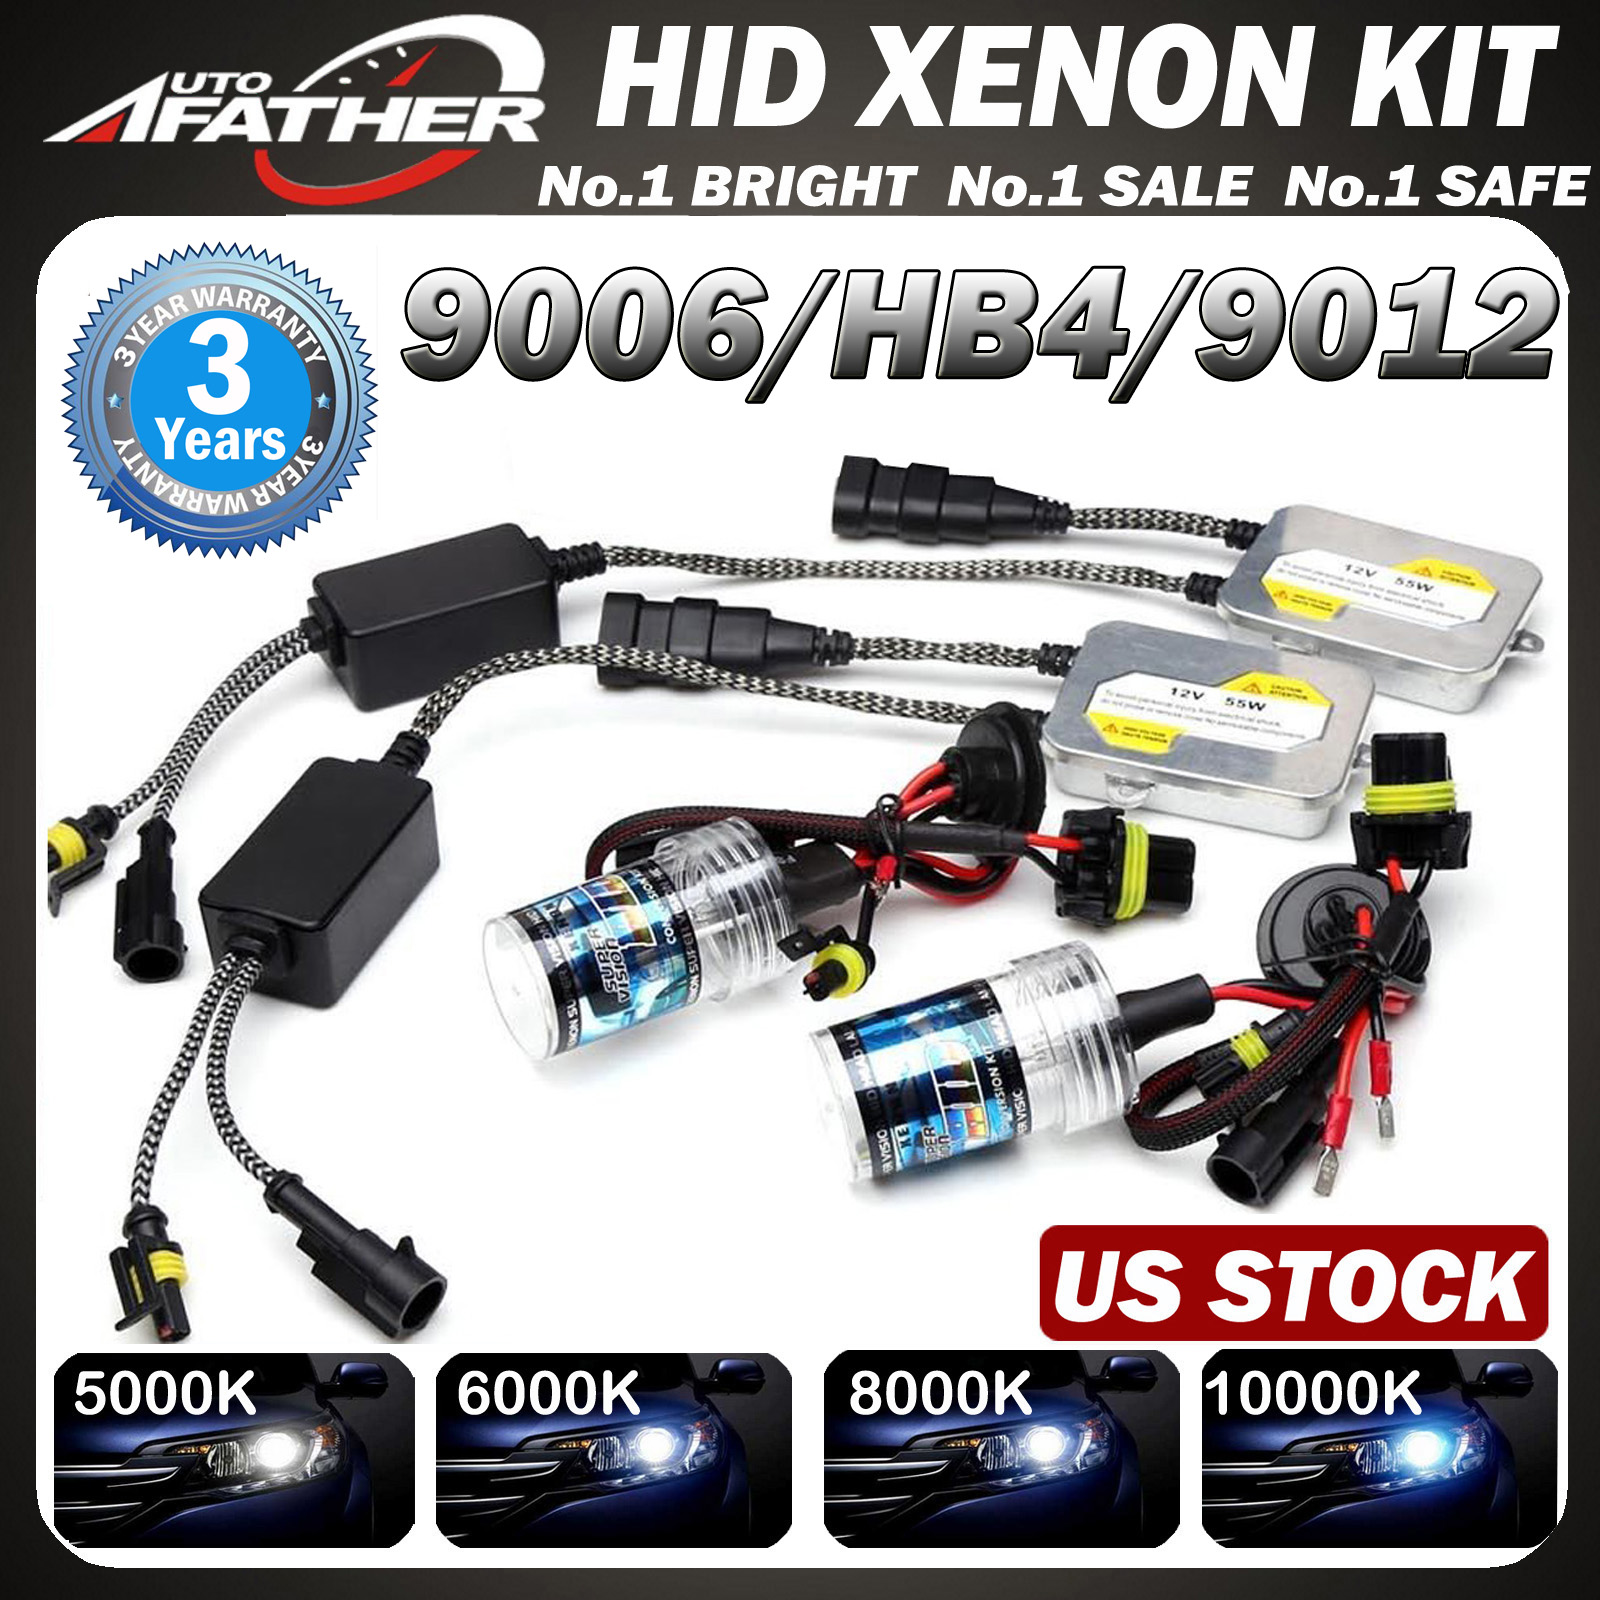 Details about Xenon Bulbs Ballasts 9006 HB4 9012 HID Replacement Bulbs For  Headlight Foglight